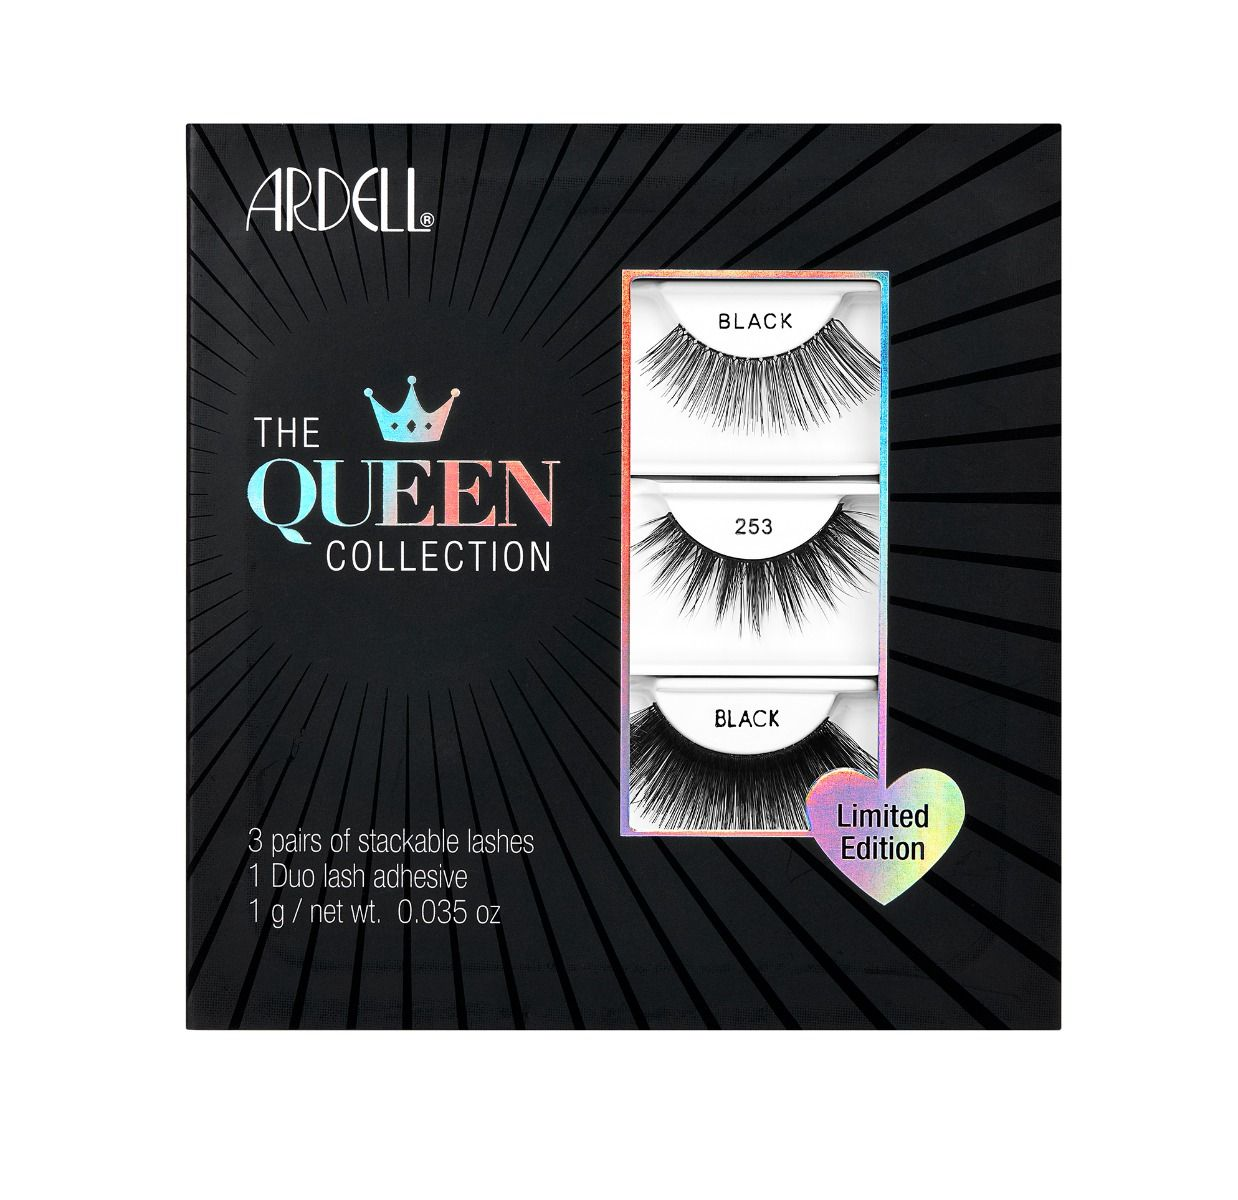 Ardell The Queen Lash Collection